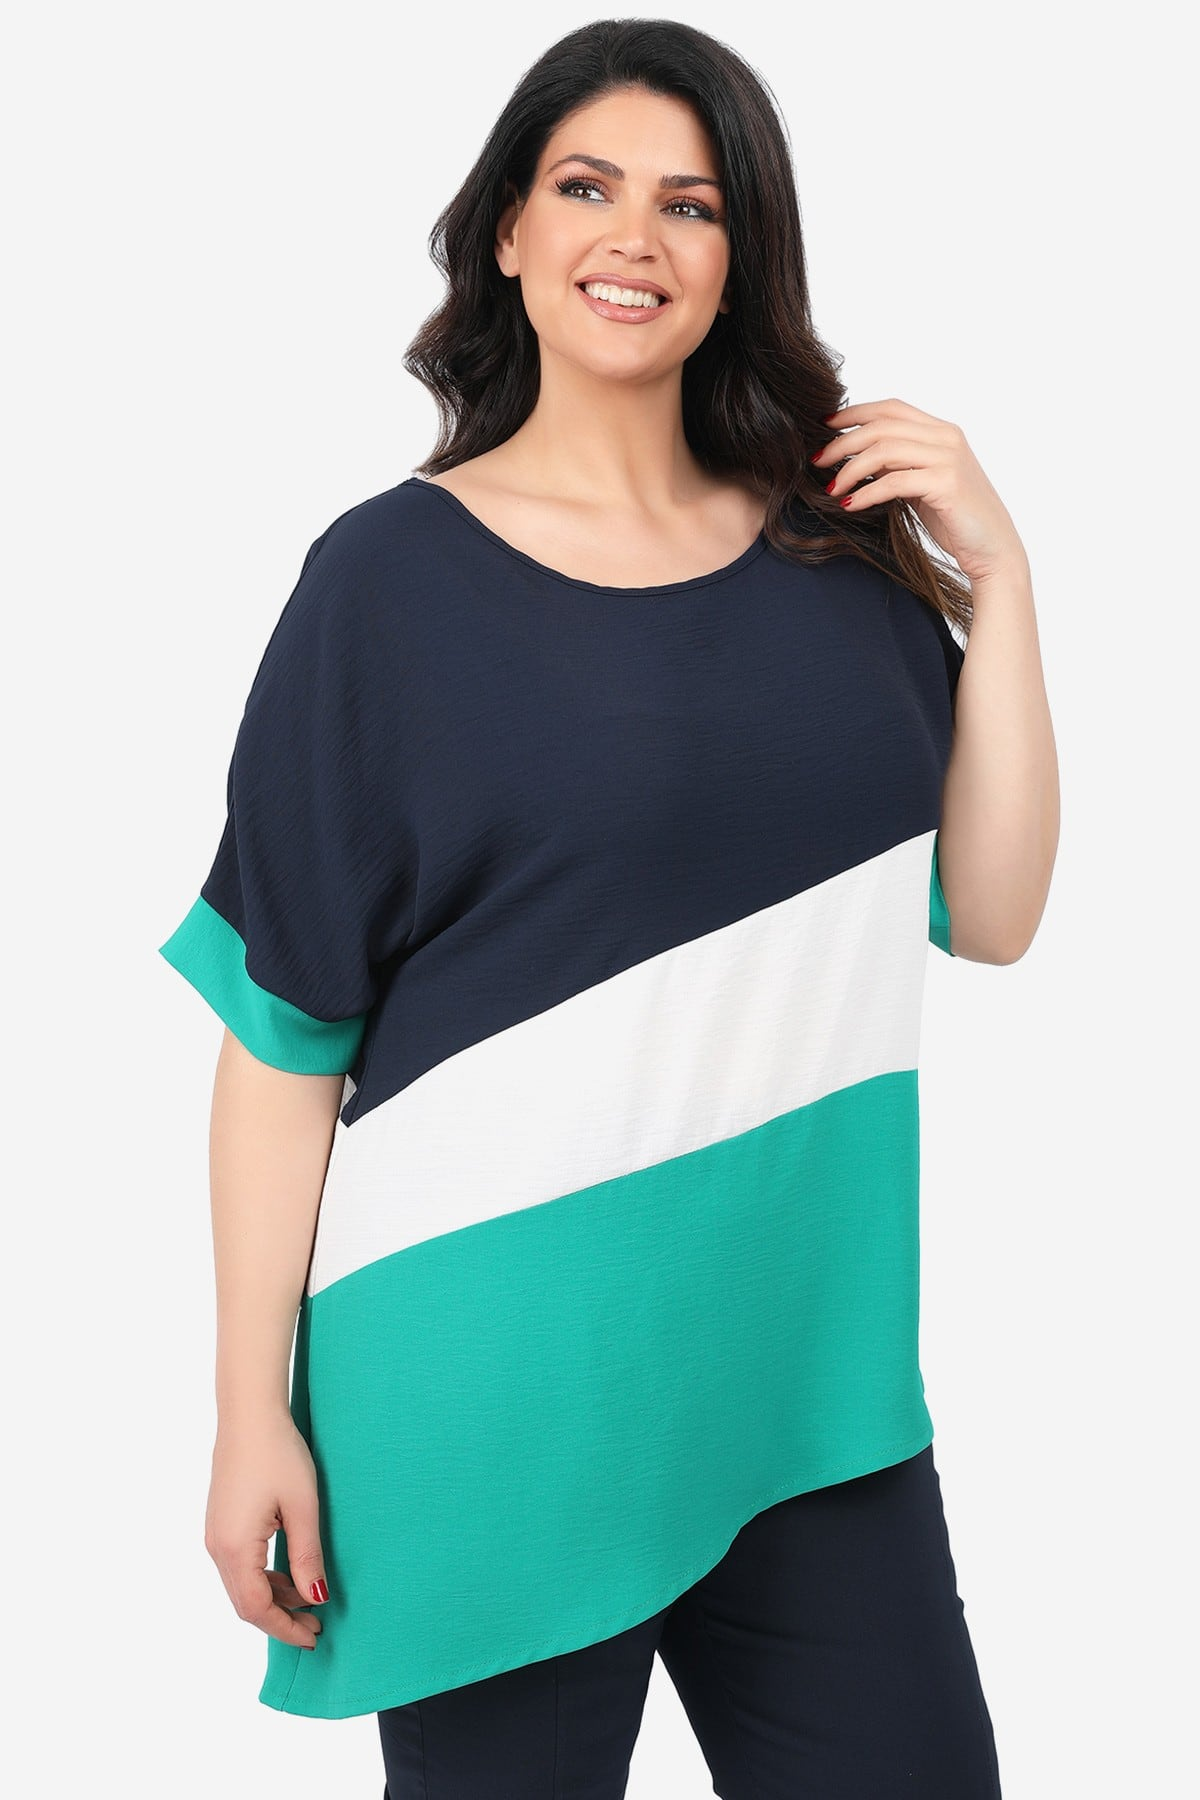 Asymetrical blouse in colorblocking